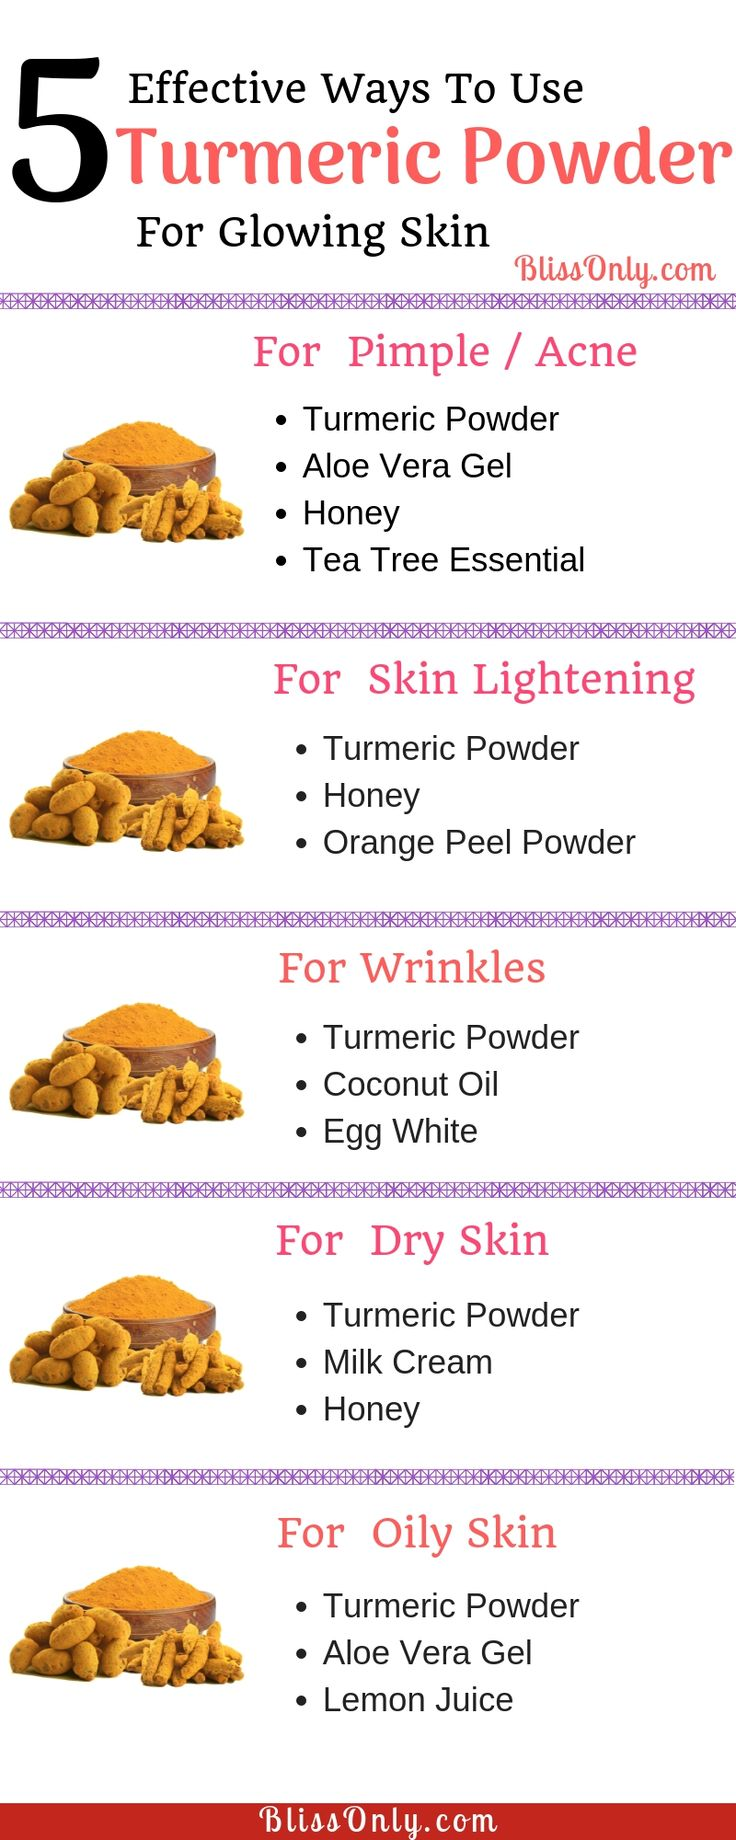 5 Turmeric Face Mask For Beautiful FaceBlissonly | Natural Beauty, Weightloss, Healthy Living Ideas